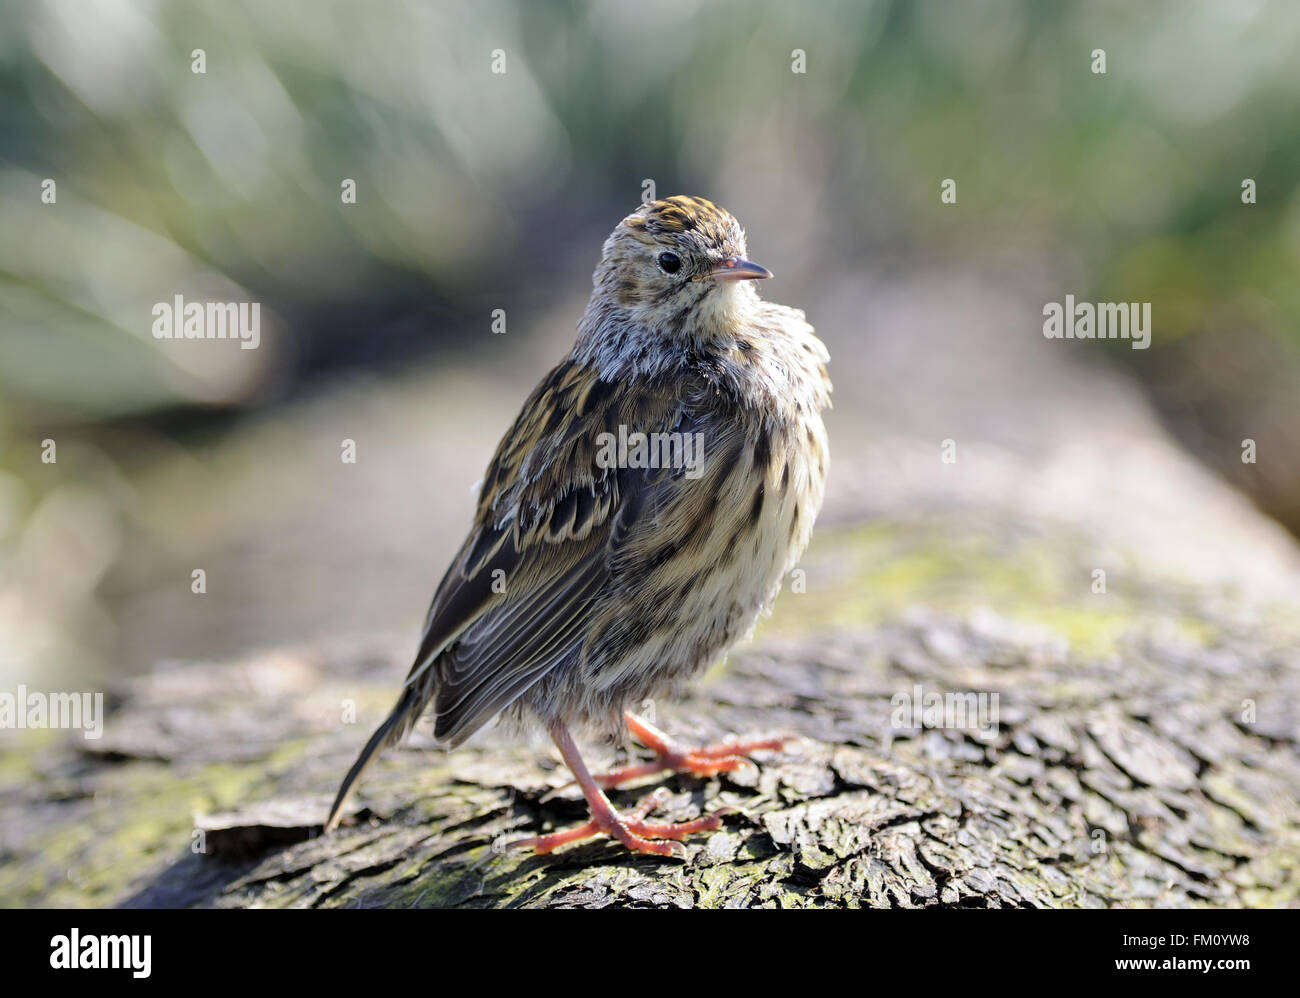 South Georgia pipit (Anthus antarcticus). It is endemic to South Georgia and is  the only song bird found  in Antarctica. - Stock Image